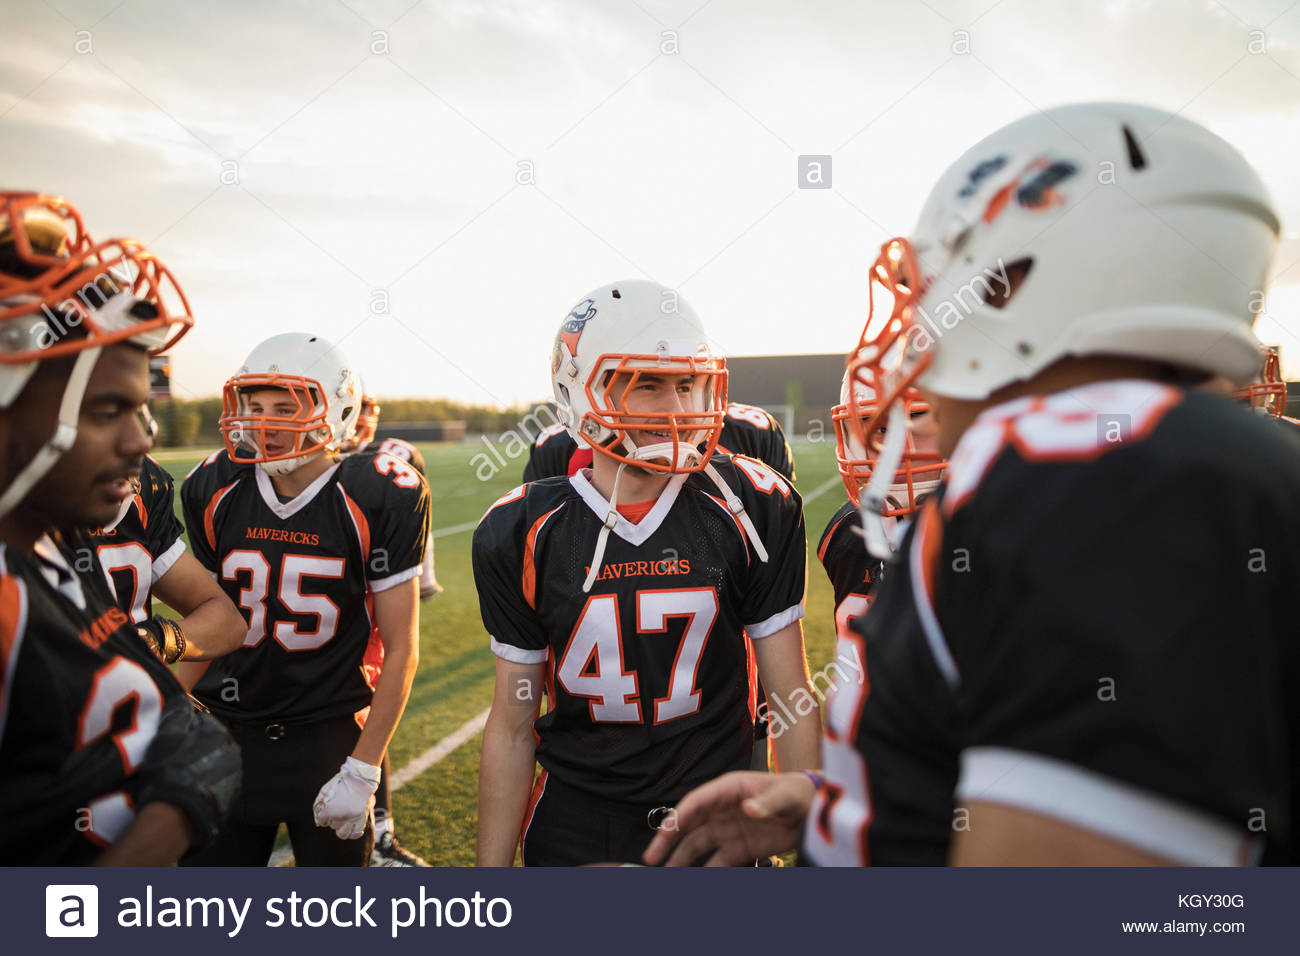 Teenage boy high school l'équipe de football de parler en caucus sur terrain de football Photo Stock